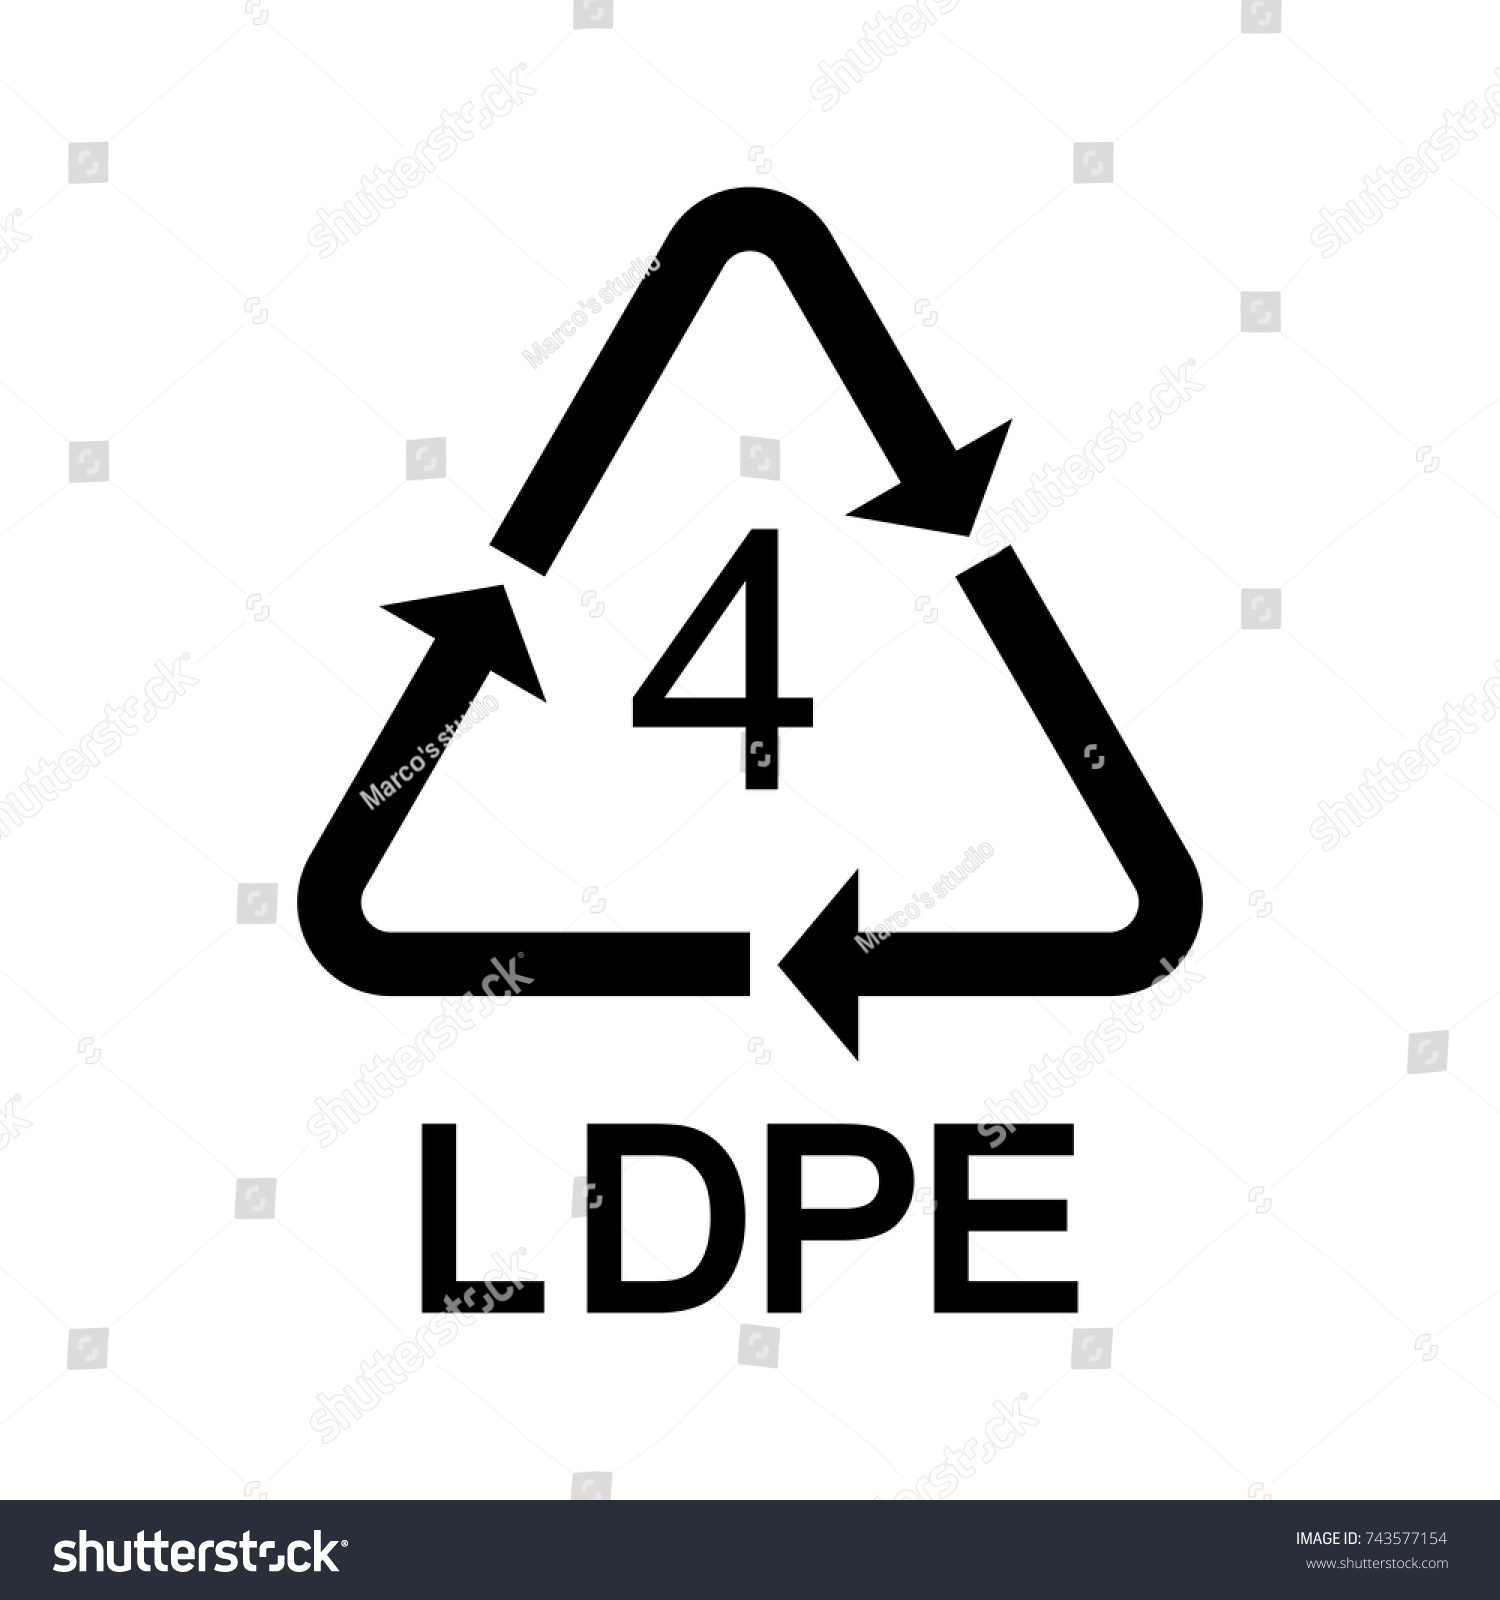 Plastic recycling symbol ldpe 4 vector stock vector 743577154 plastic recycling symbol ldpe 4 vector icon biocorpaavc Choice Image